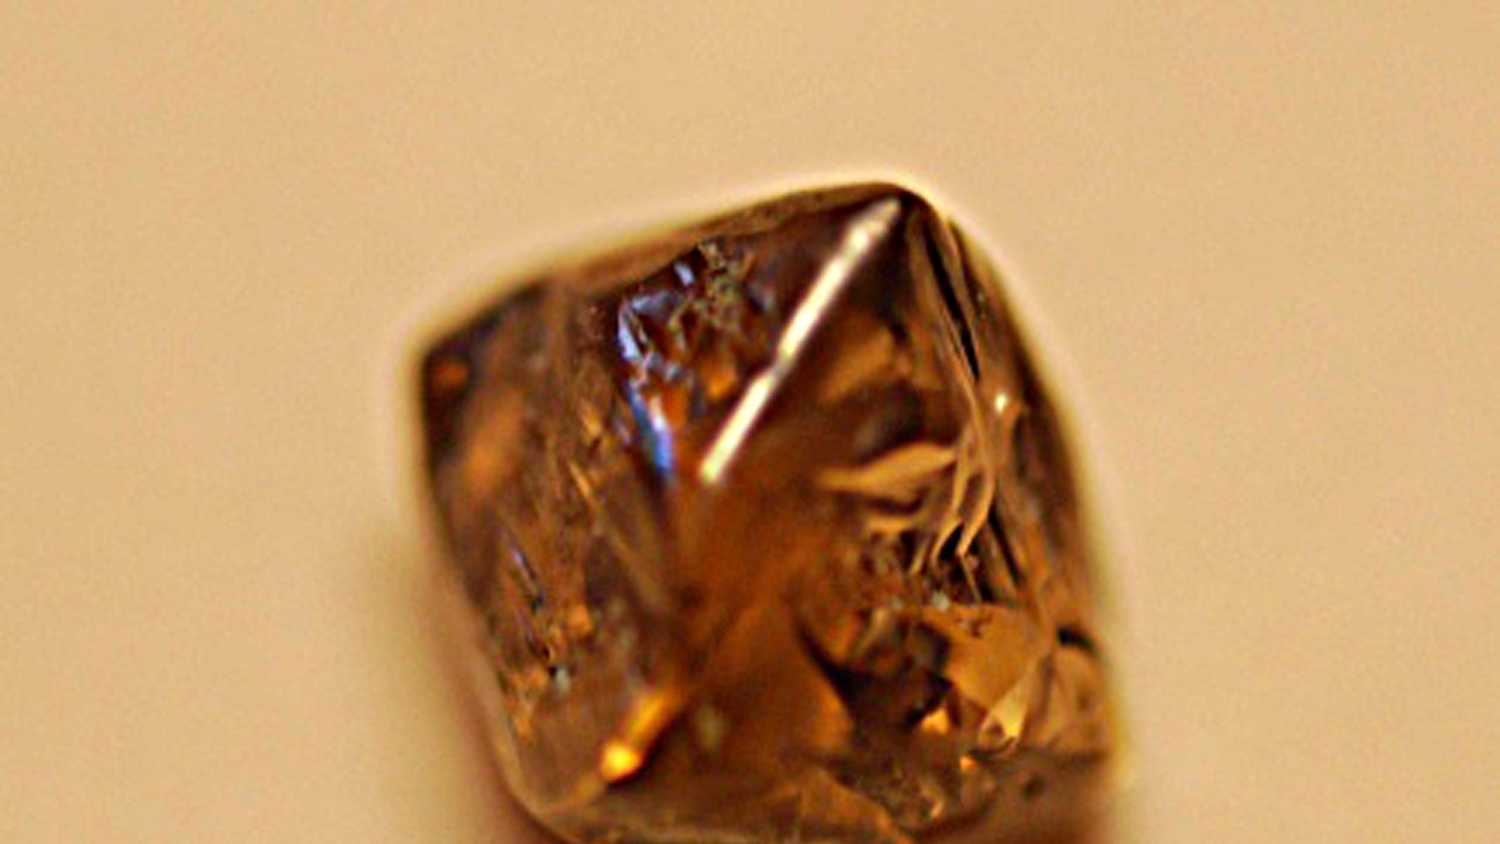 Close-up of the diamond